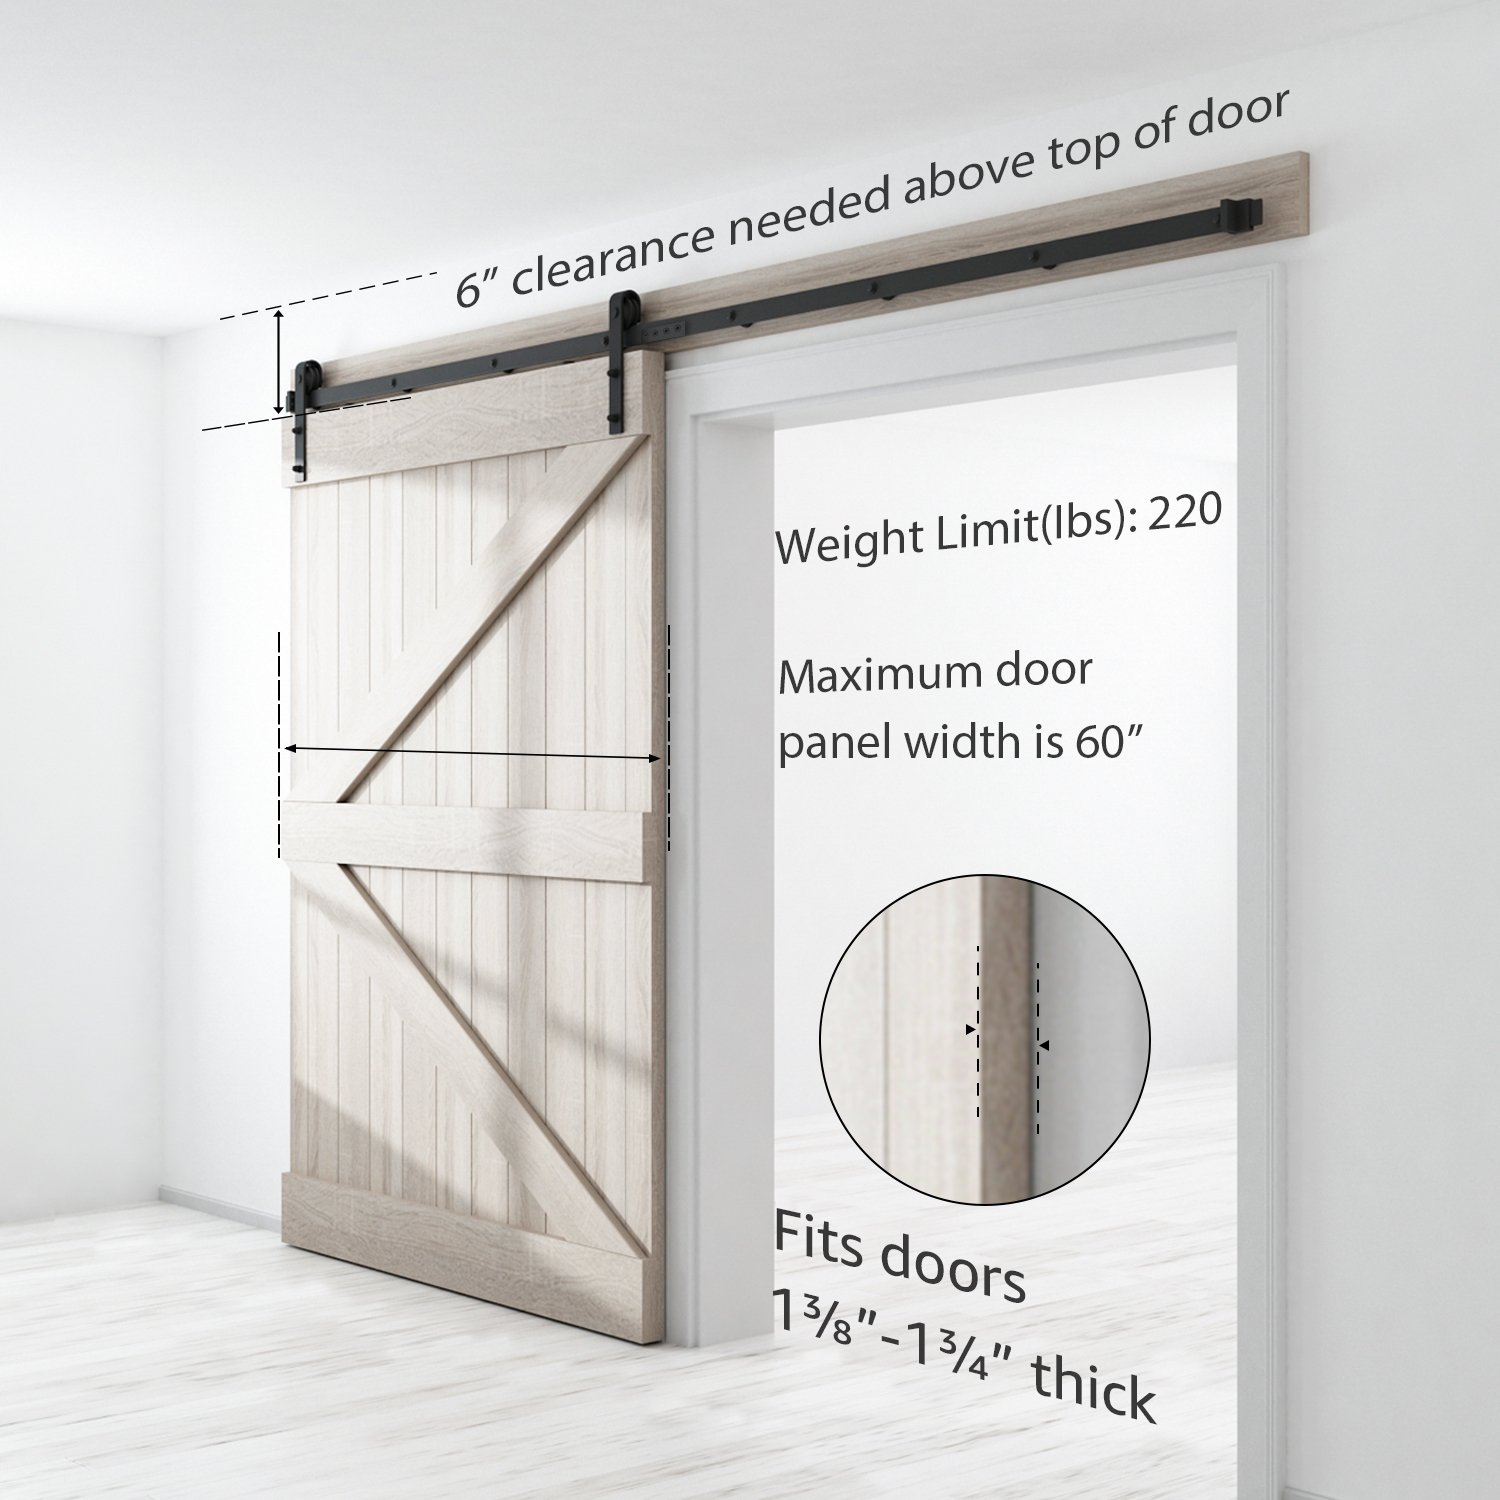 SMARTSTANDARD SDH1000JSHAPE01BK Heavy Duty Sturdy Sliding Barn Door Hardware Kit, 10' DoubleRail,Super Smoothly and Quietly, Simple and Easy to Install, Fit 60'' Wide DoorPanel by SMARTSTANDARD (Image #3)